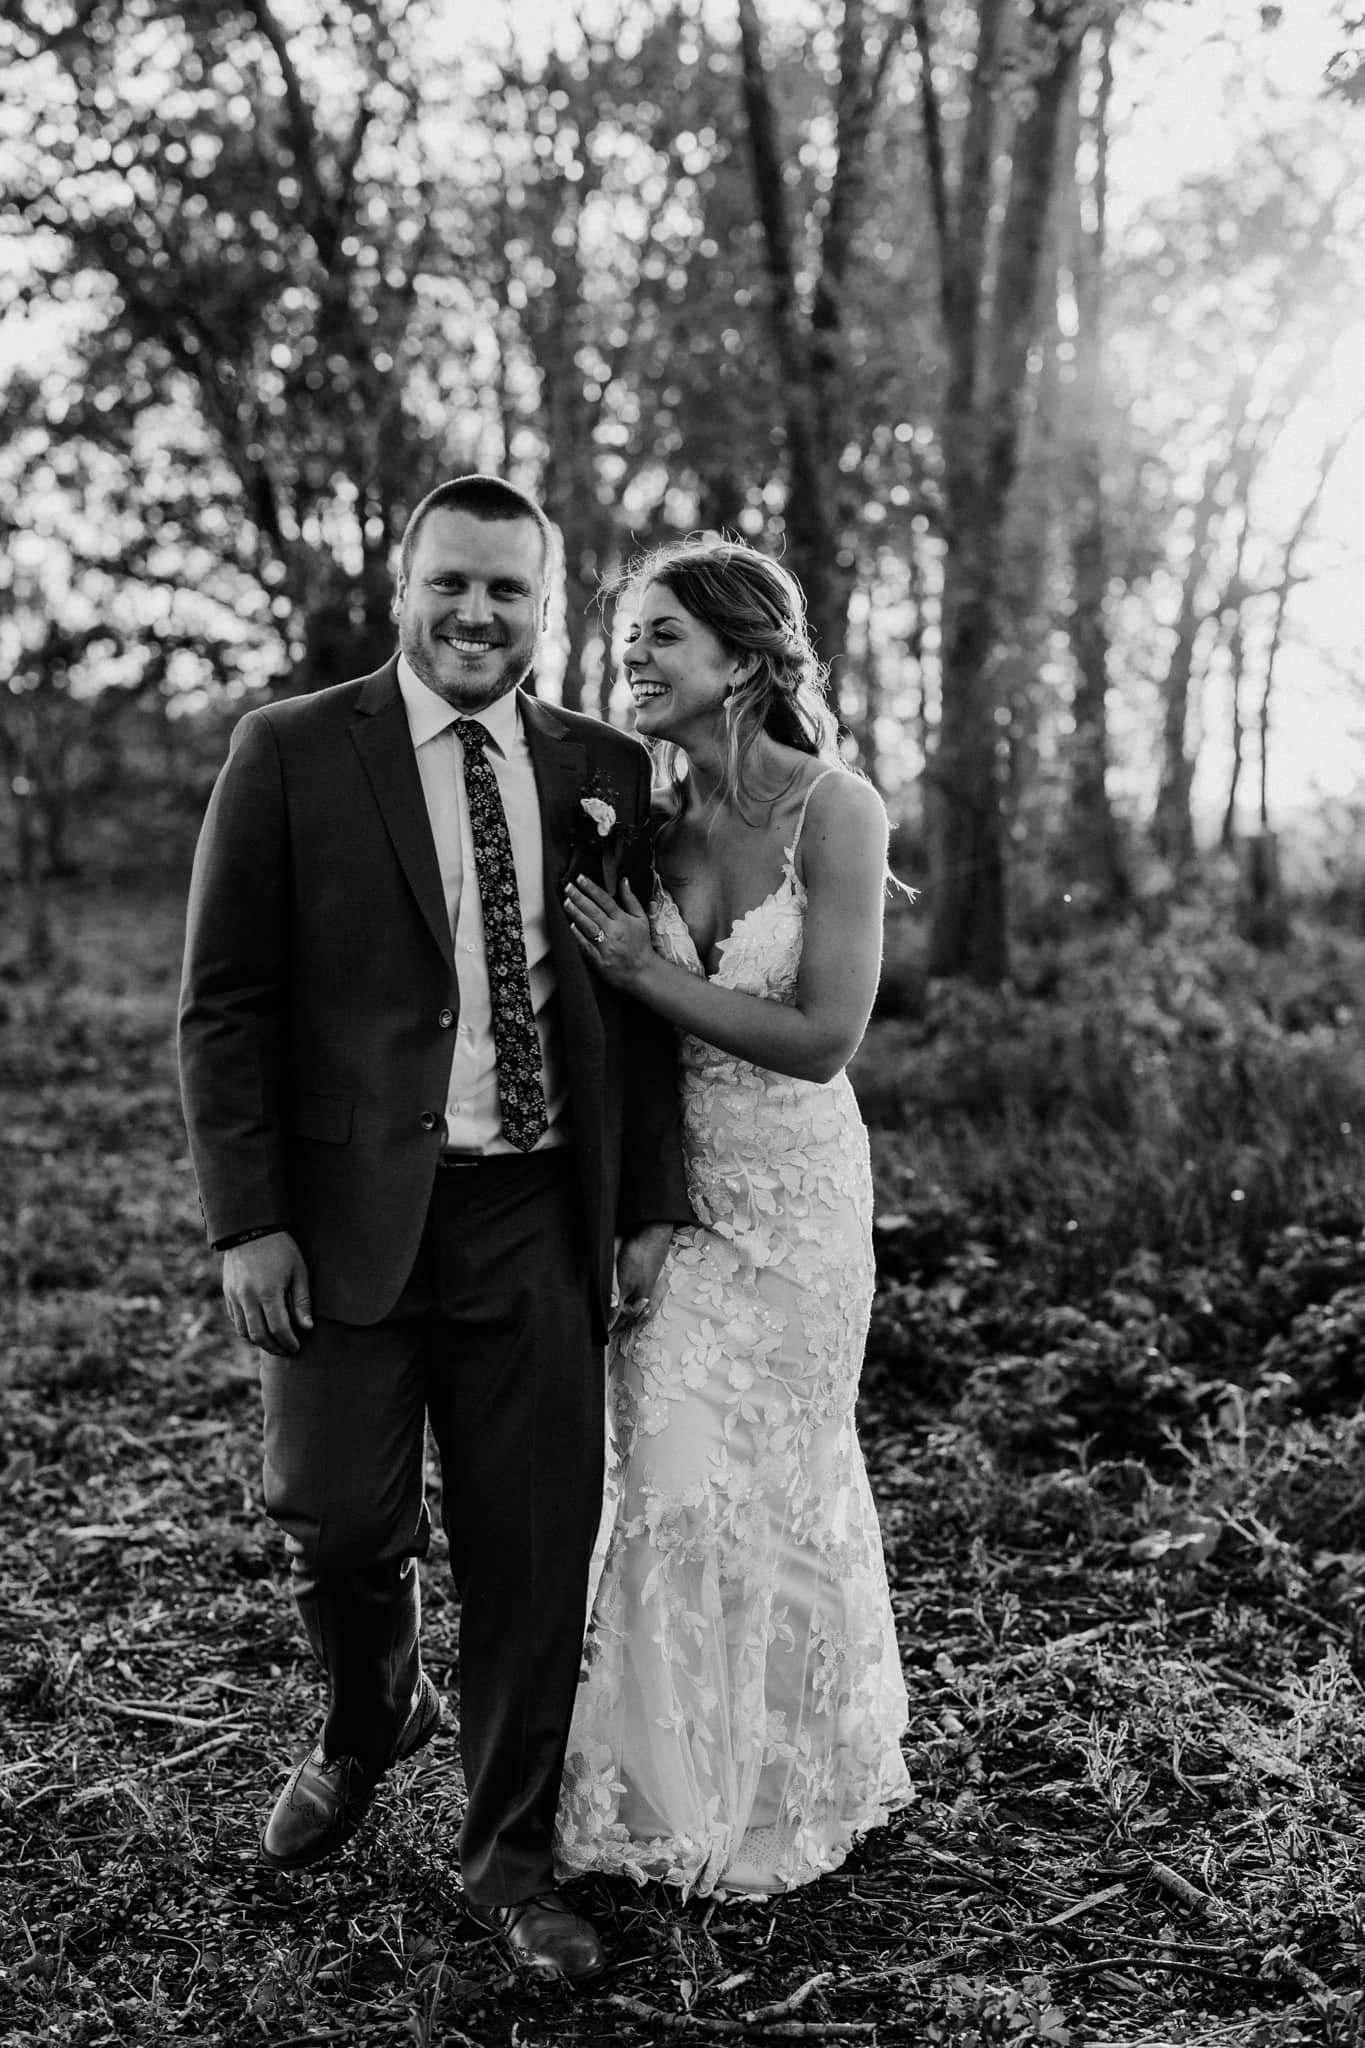 Couples smiles at each other outside at their Schroeder Farm wedding in black and white portraits